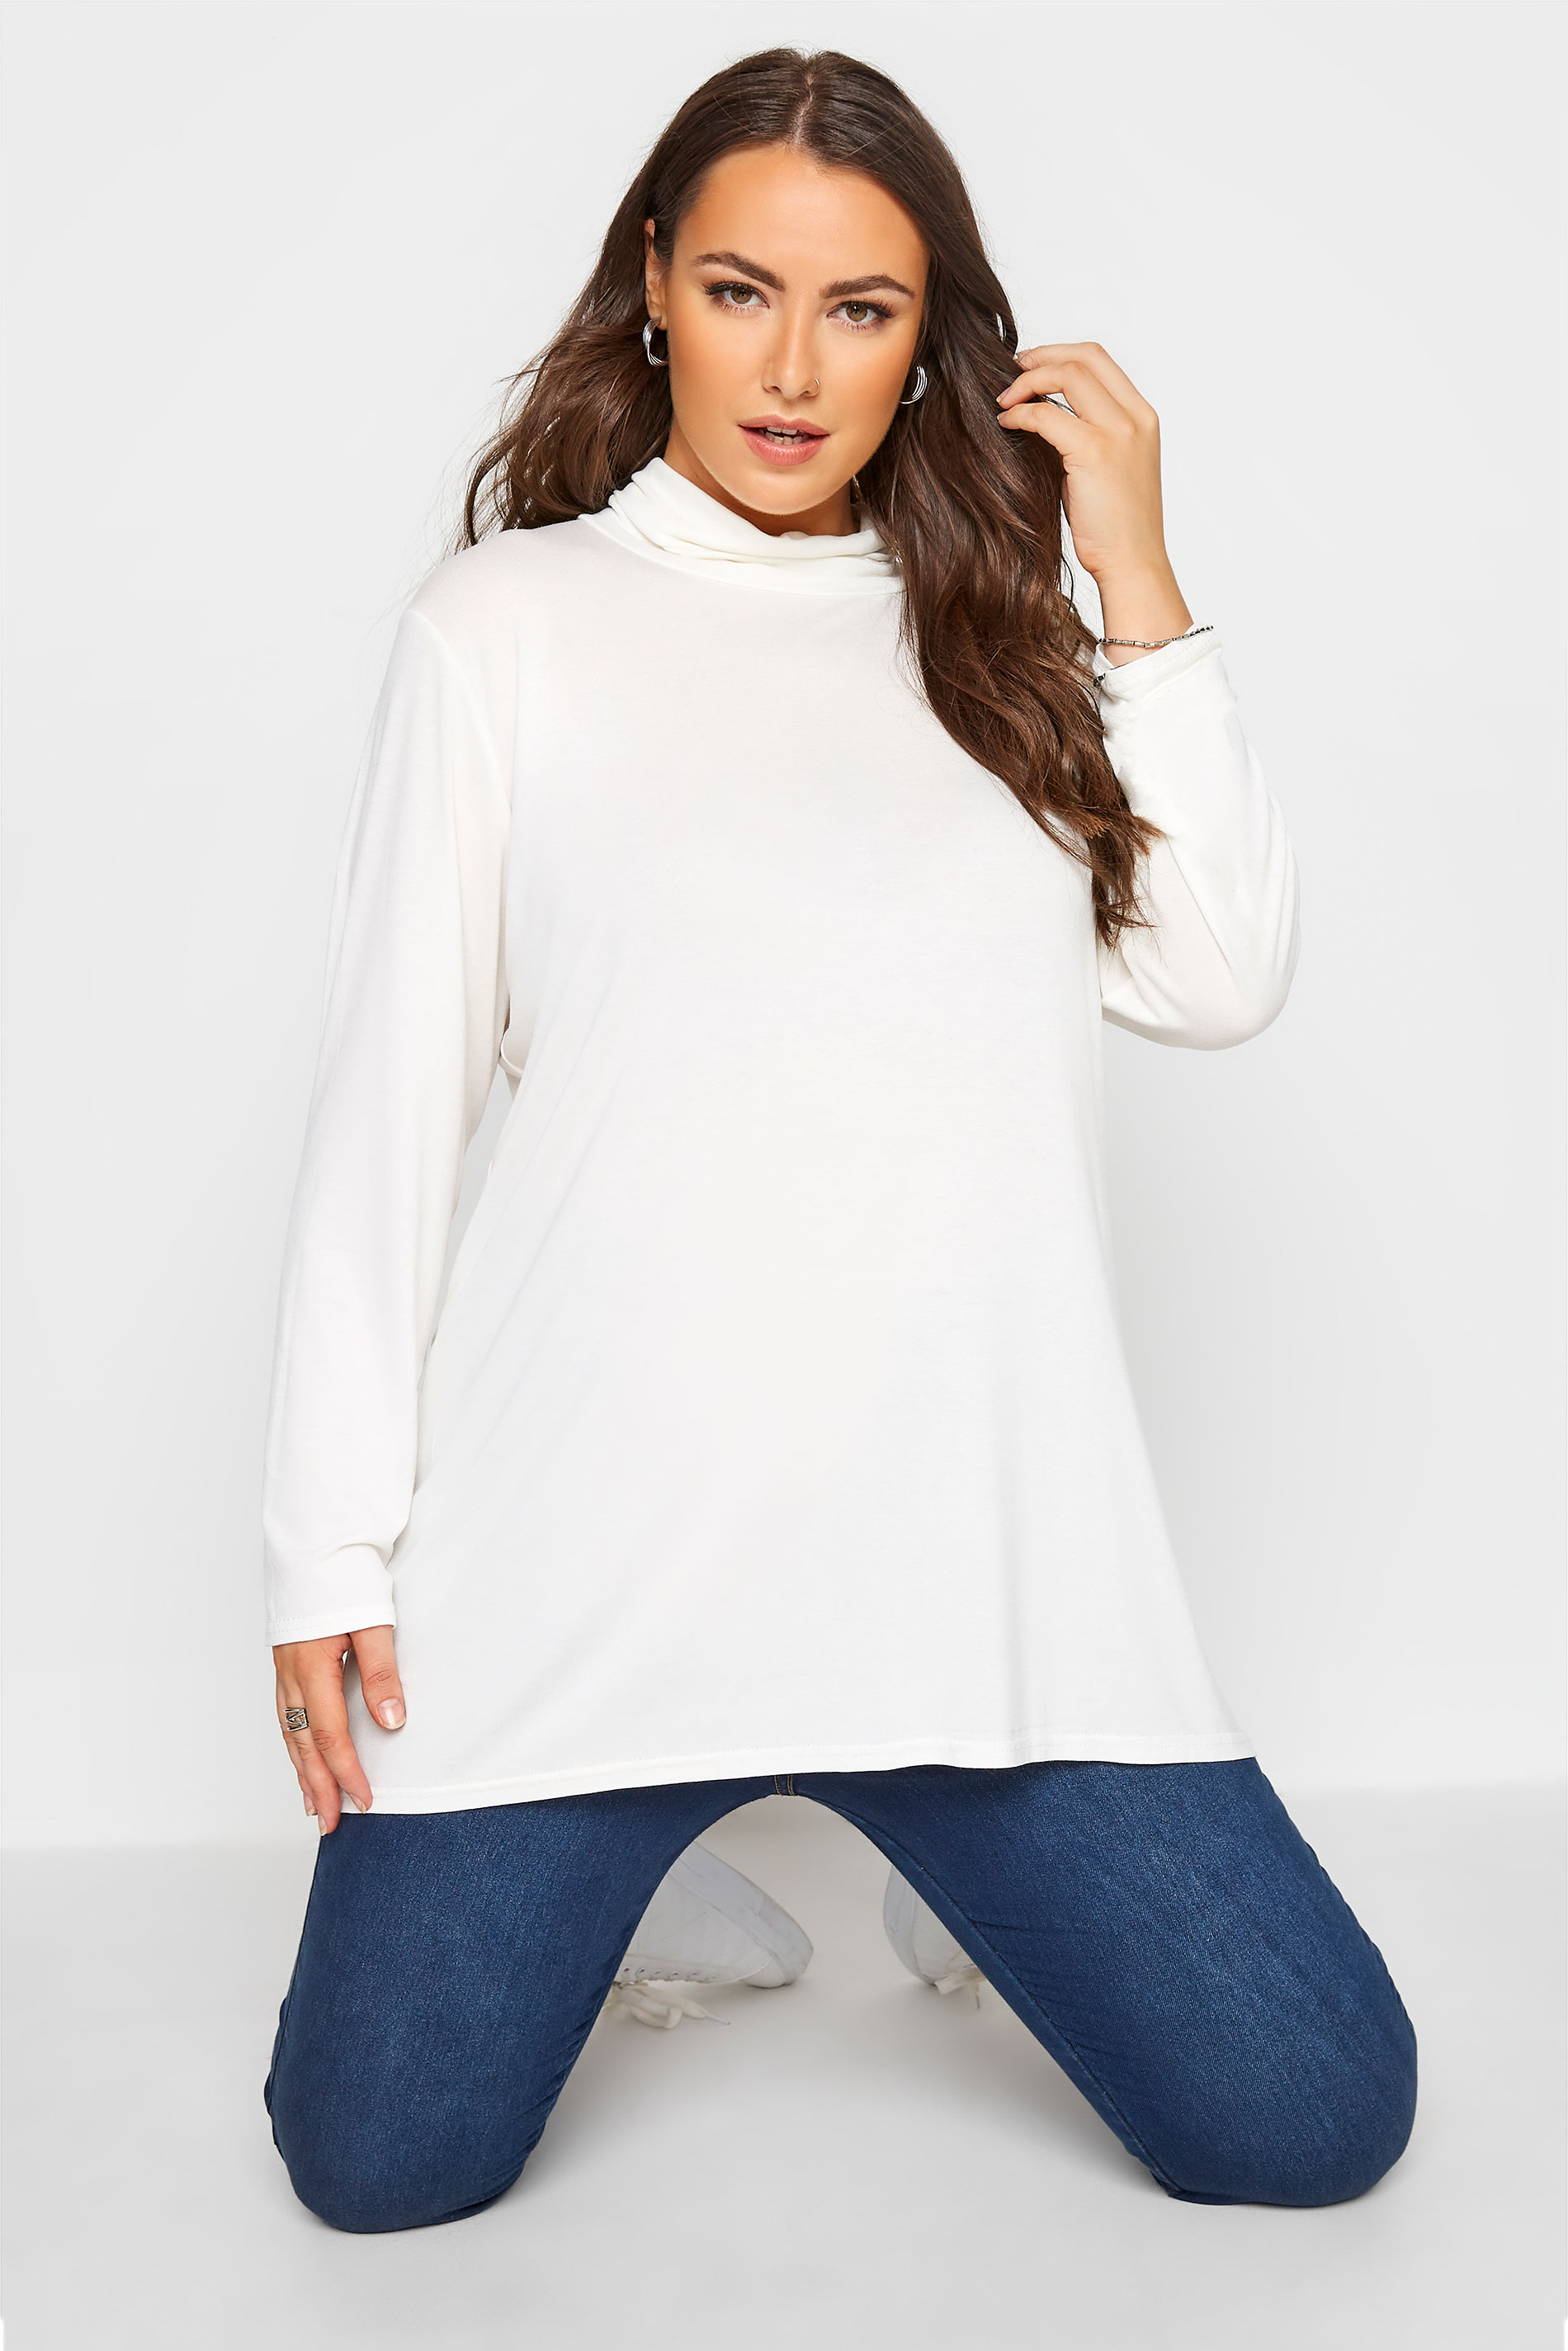 LIMITED COLLECTION White Turtle Neck Top_A.jpg